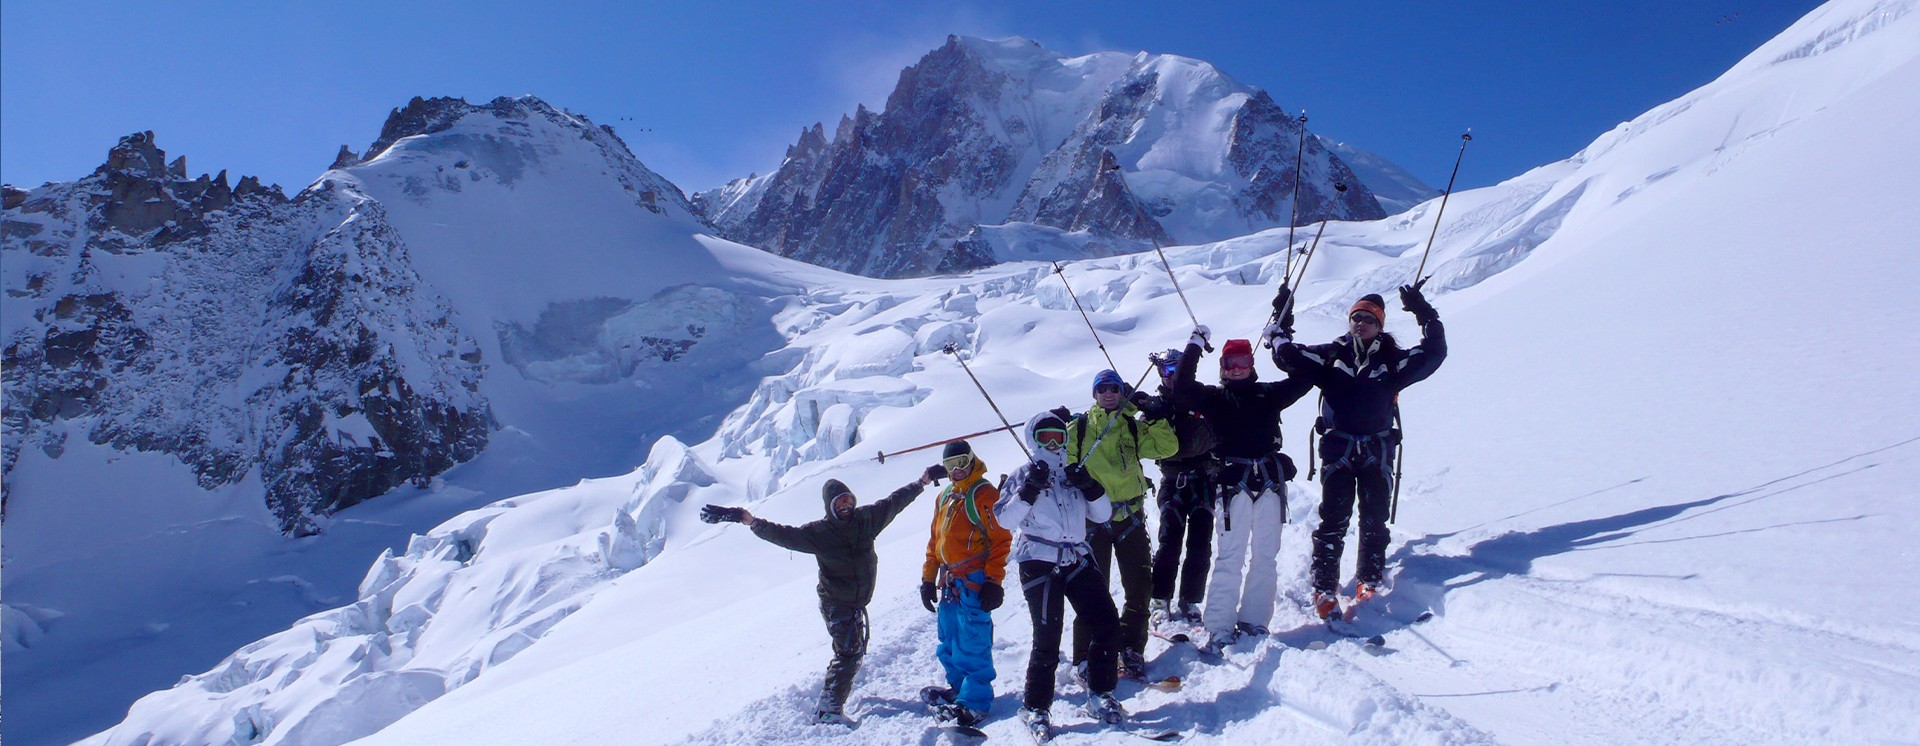 Winter activities vallee blanche - chamonix mont blanc